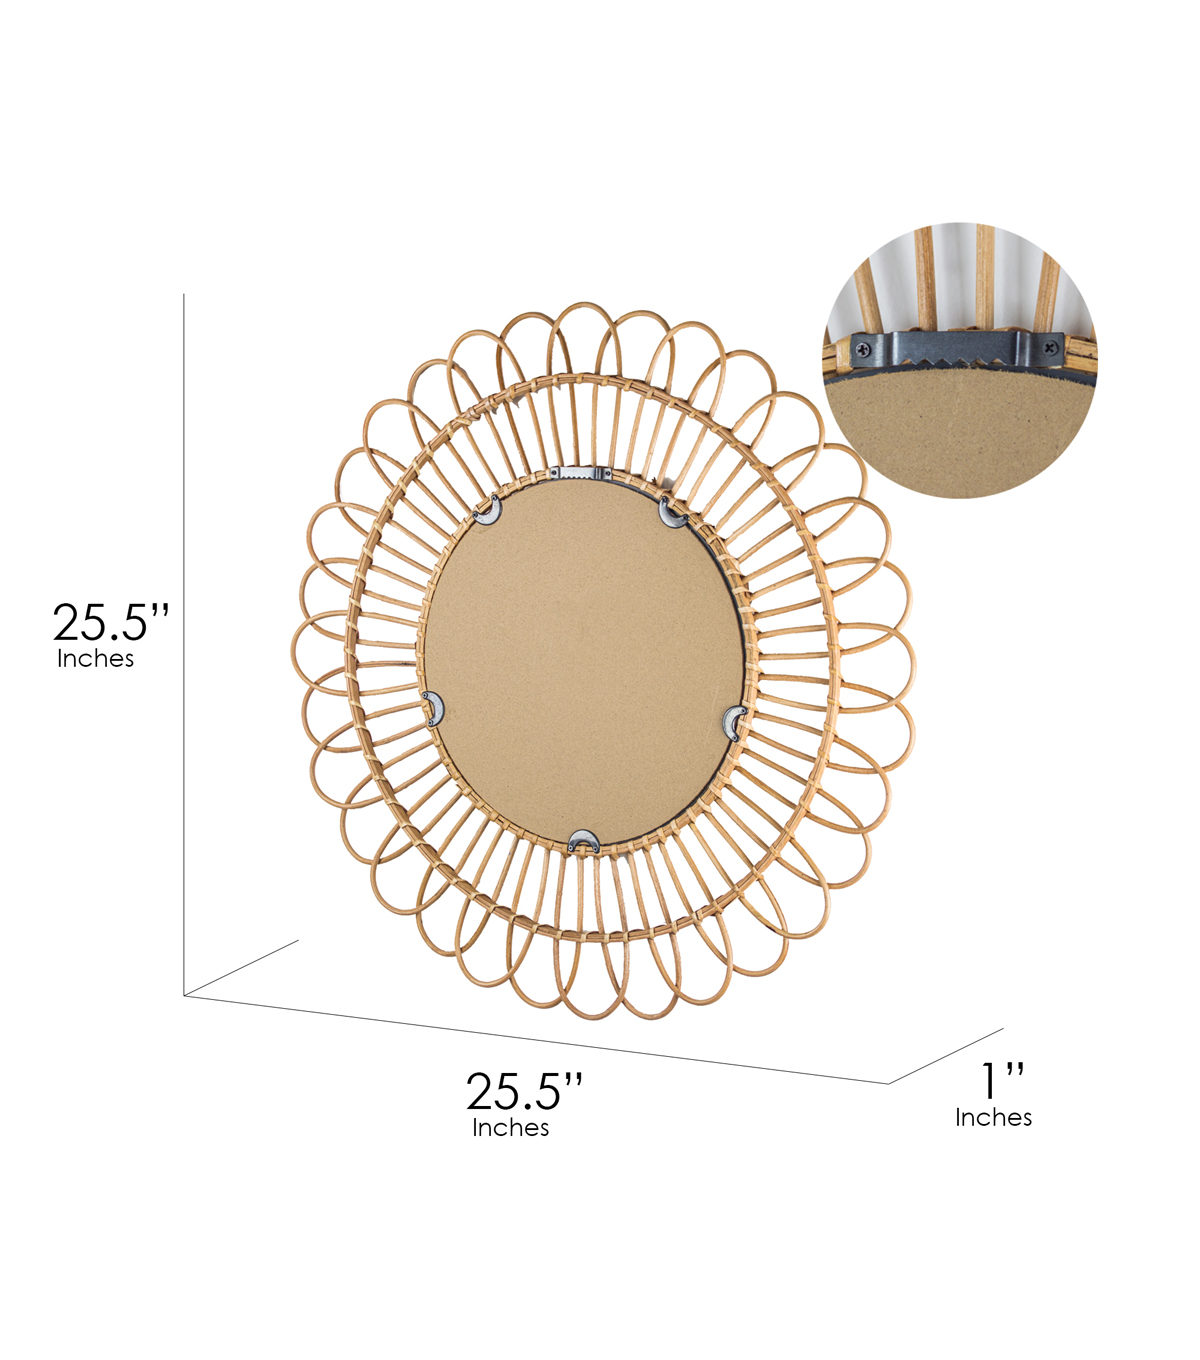 """Bamboo Weave Accent Wall: Furniture Finds 25.5"""" Woven Rattan Sunburst Accent Wall"""